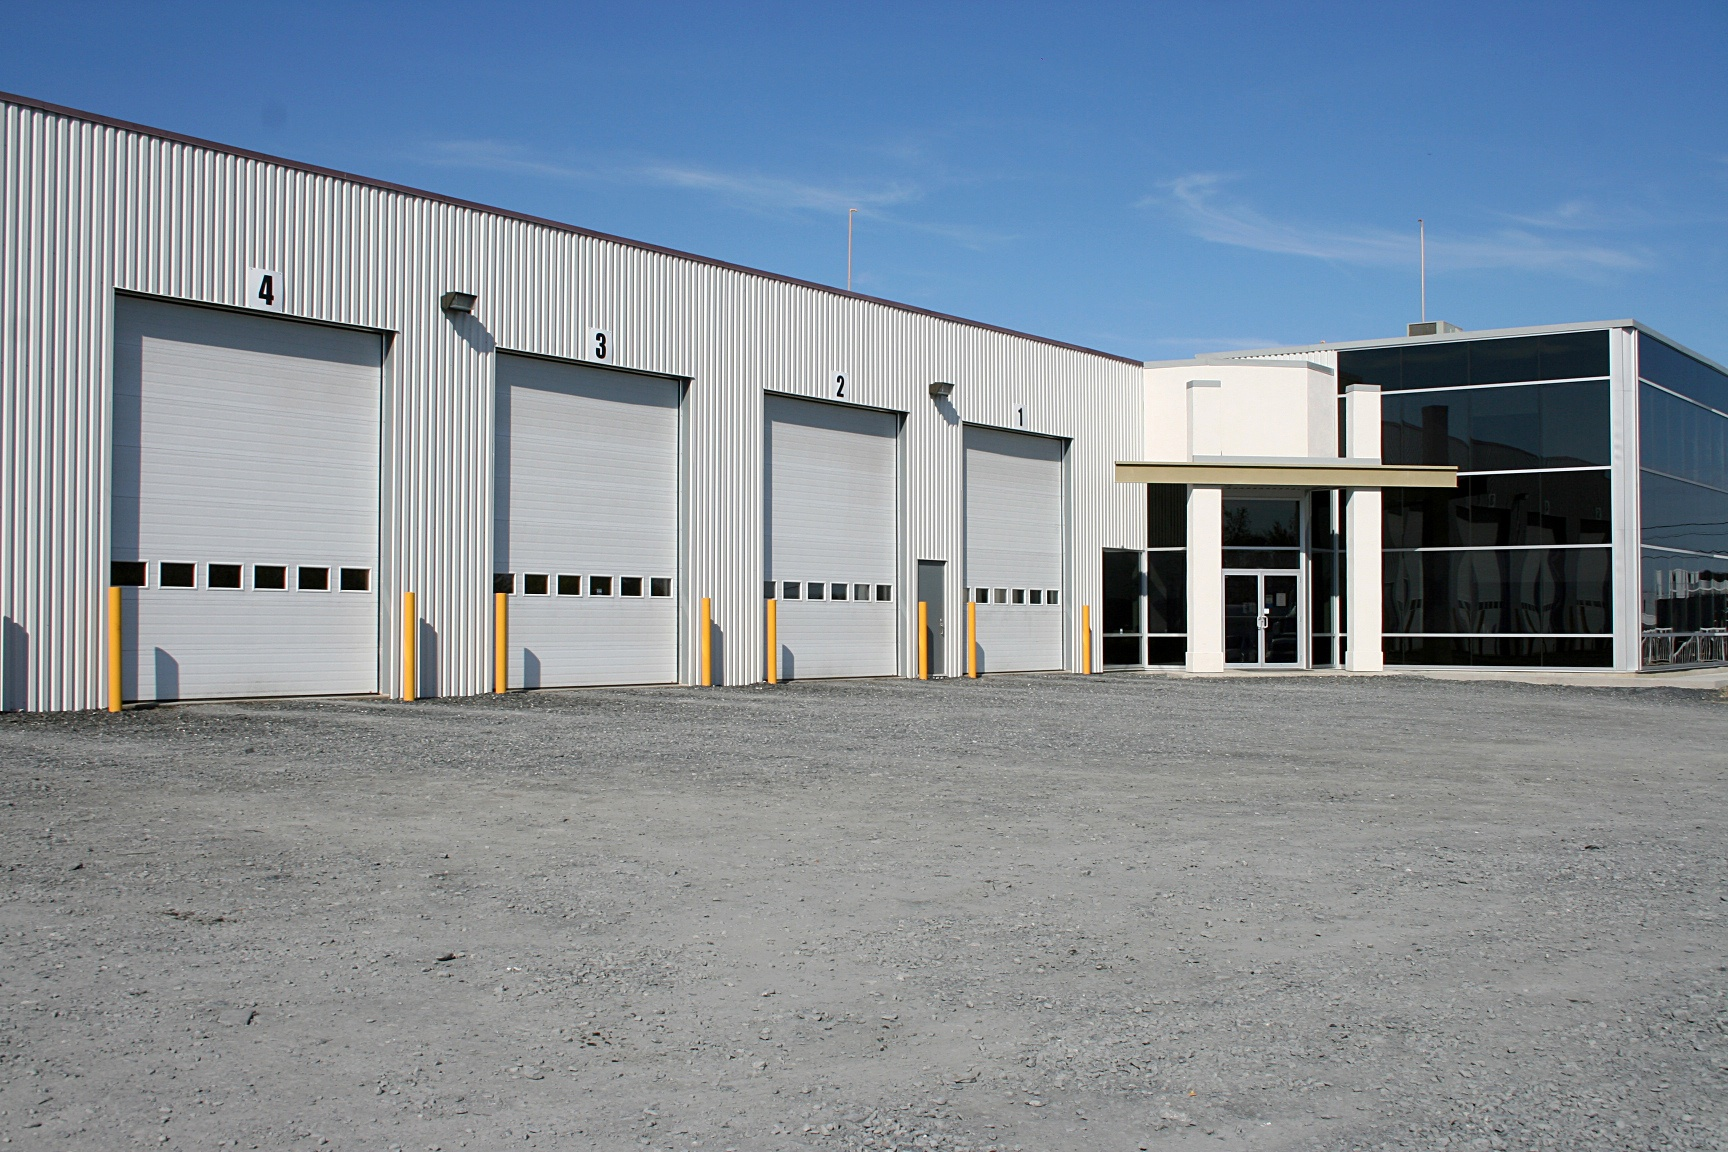 Commercial_garage_door